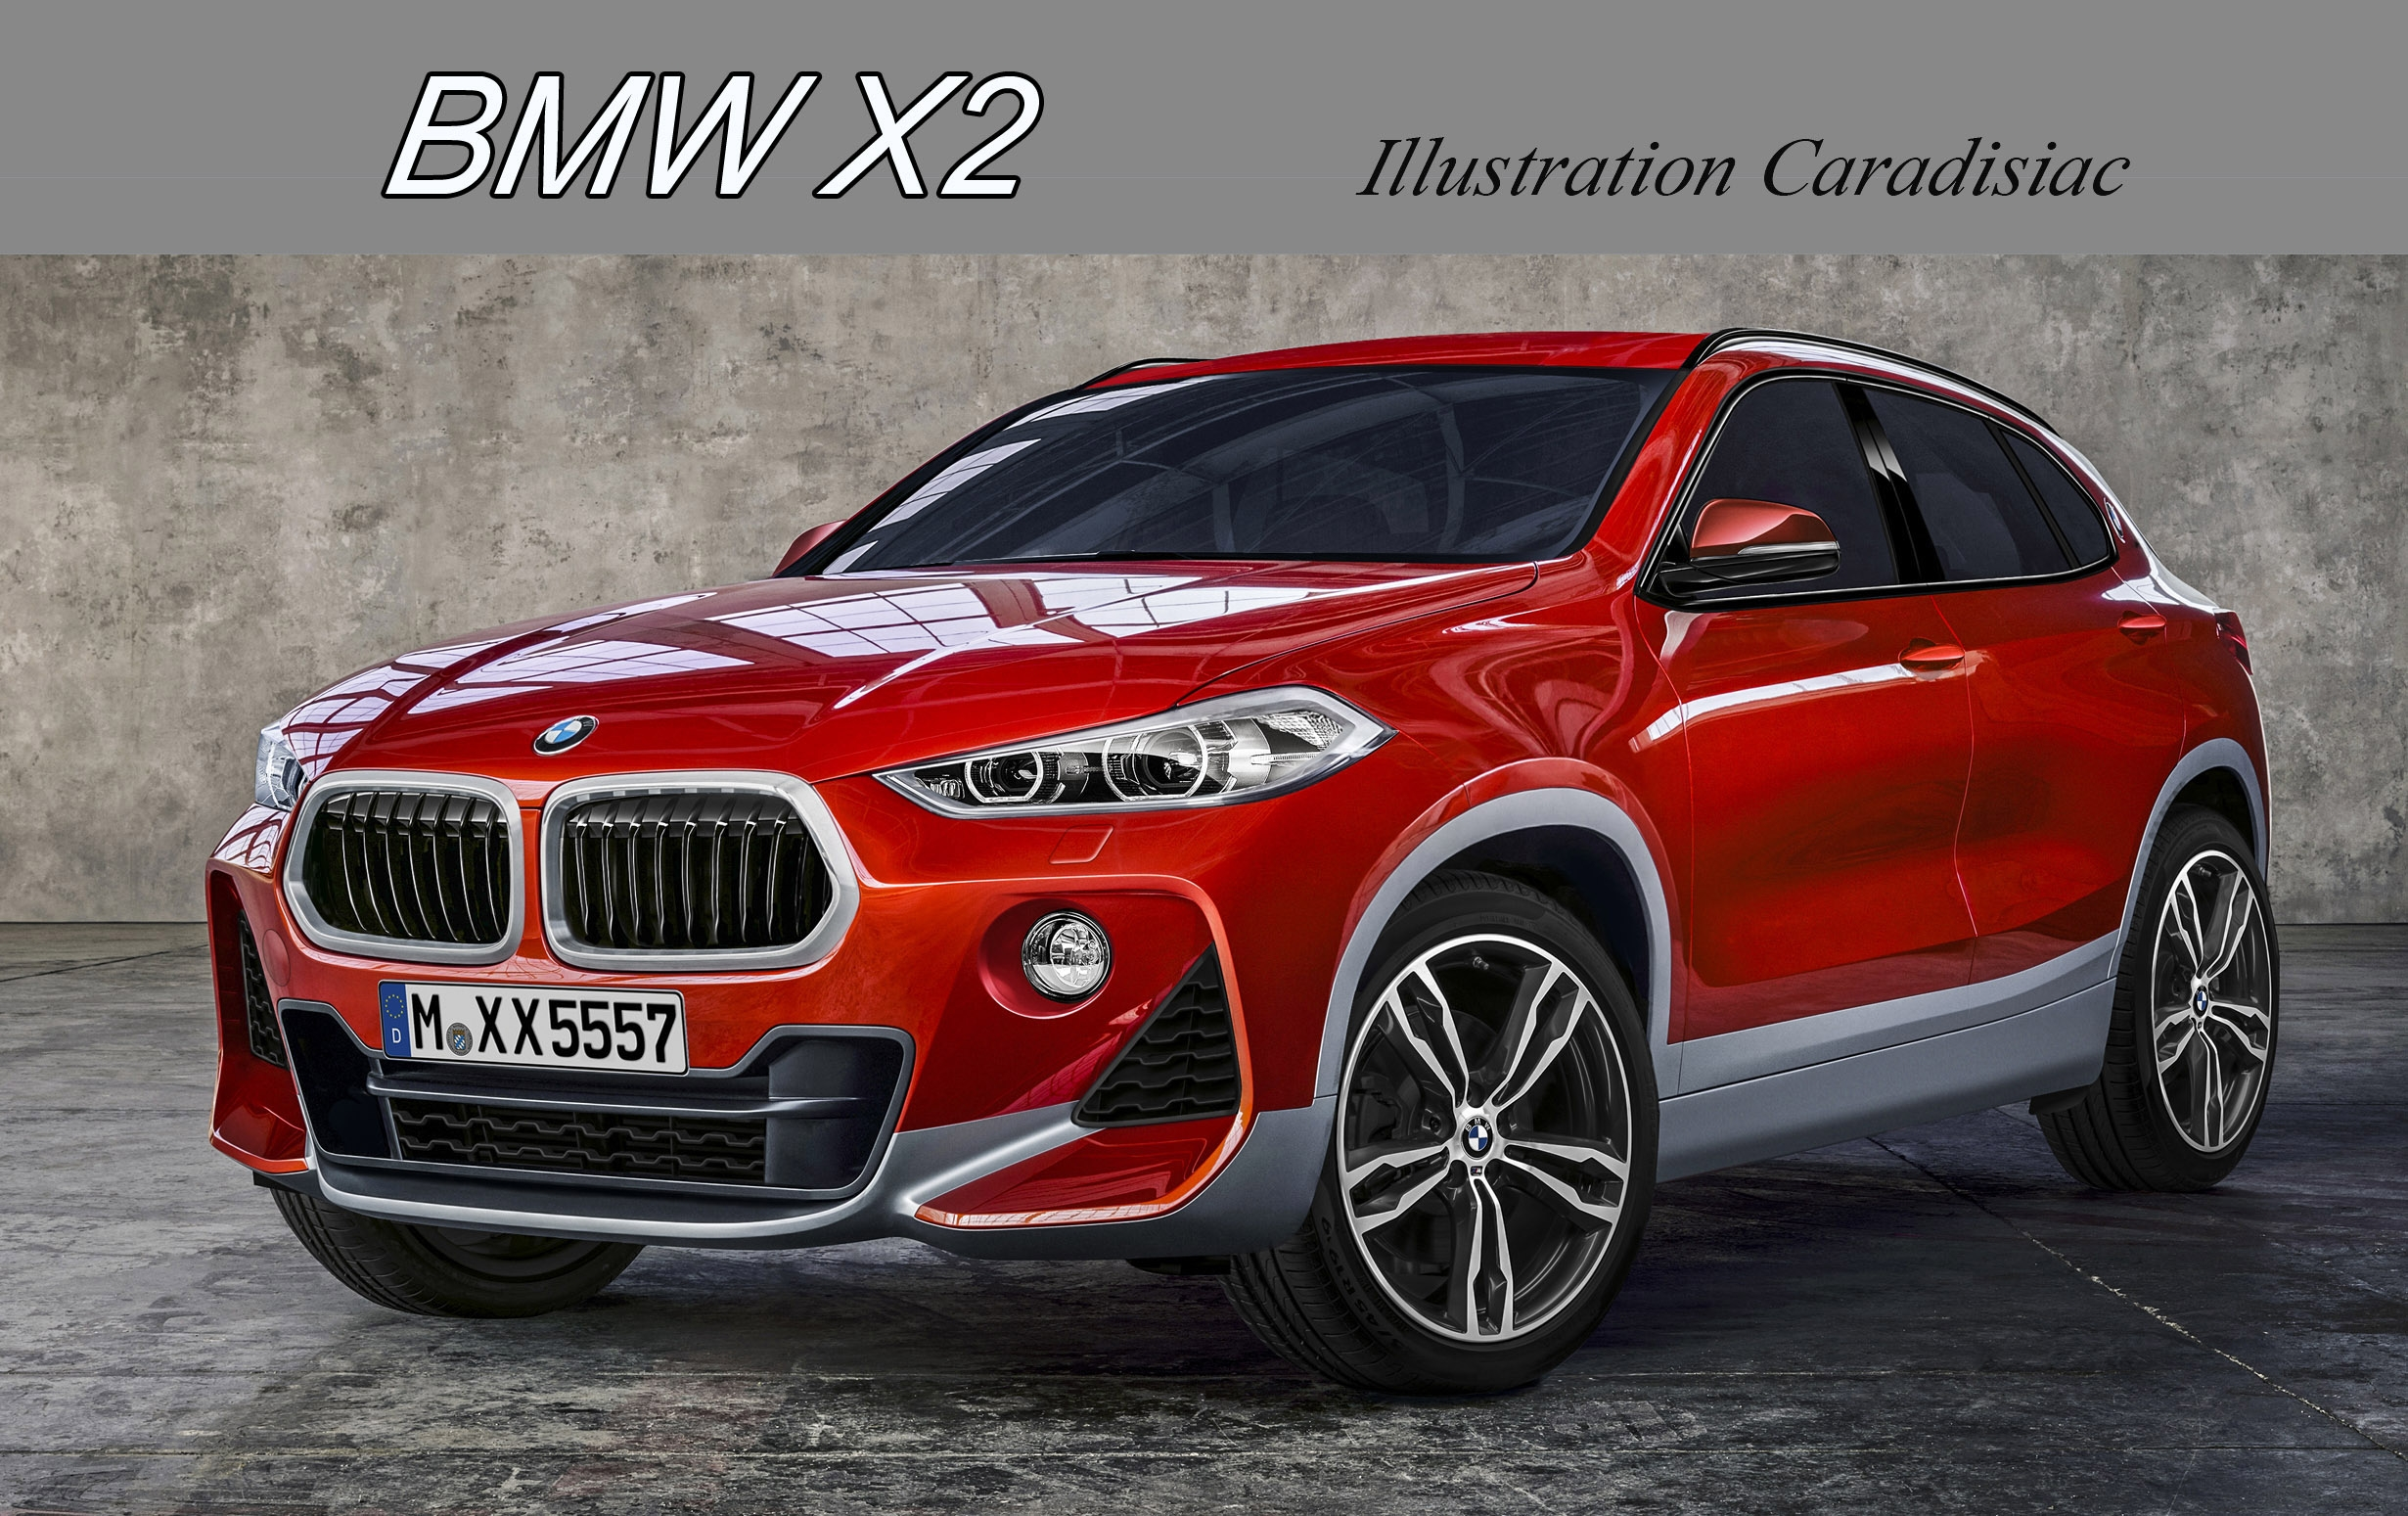 Bmw Xm5 Bmw X5 Hamann E53 1 Tuning 2017 Bmw X2 Rendered